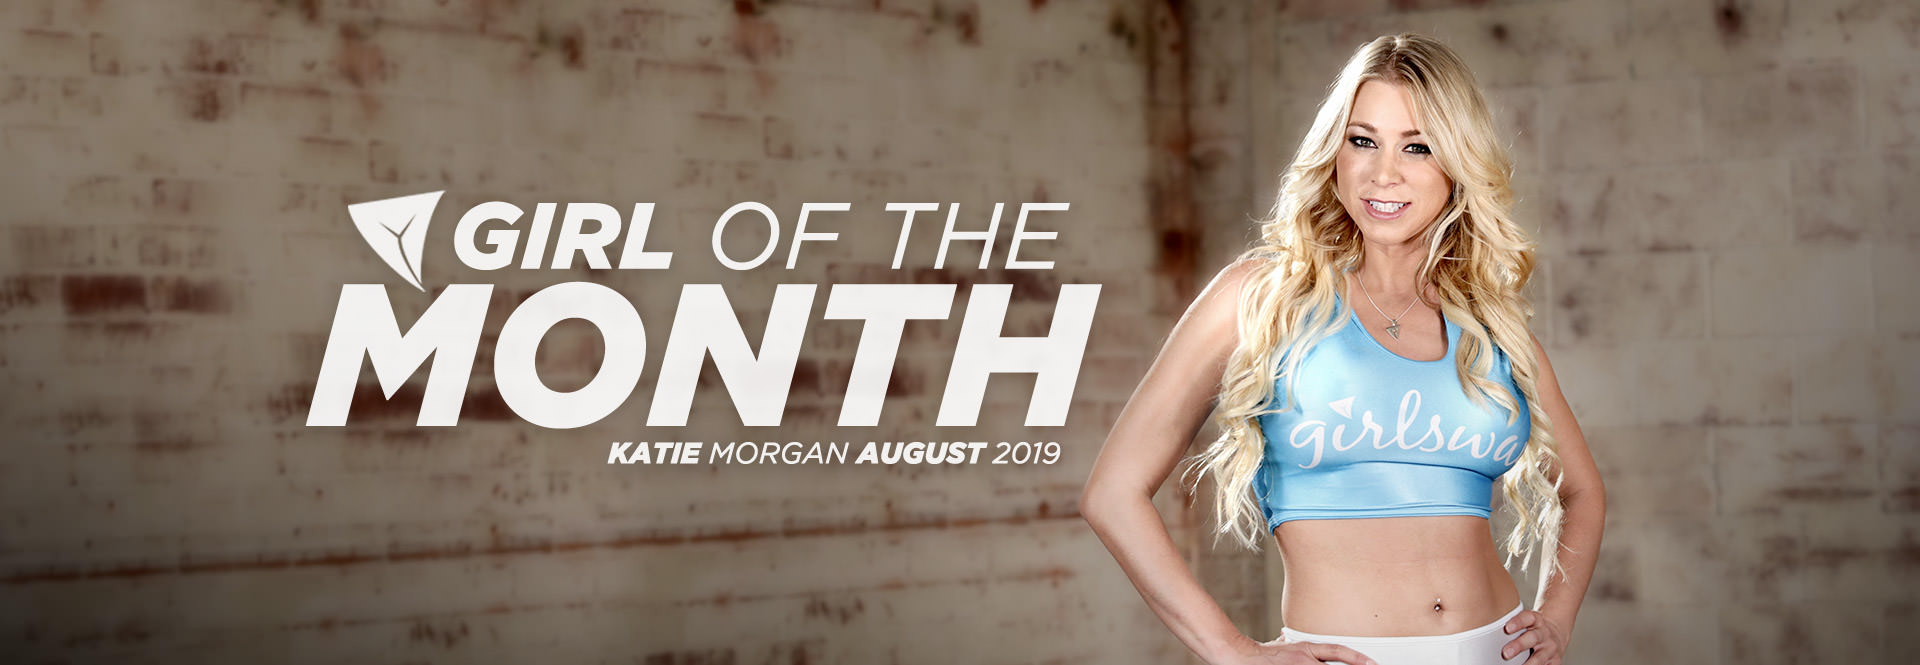 Girl Of The Month